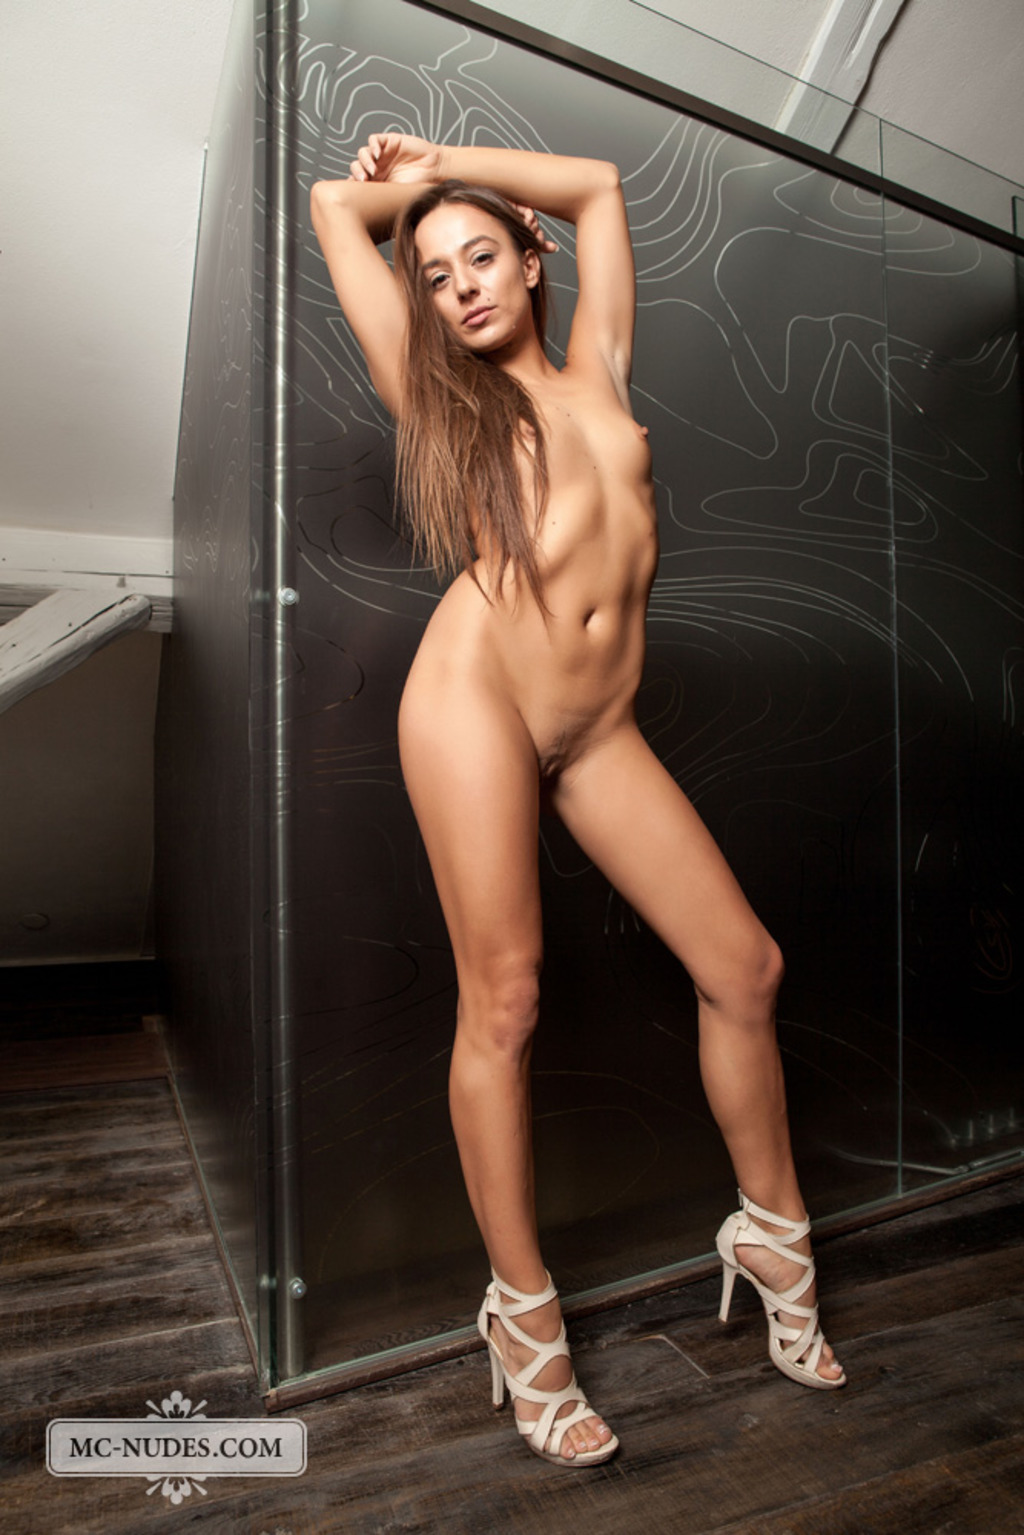 Hd nude c sexy pictures